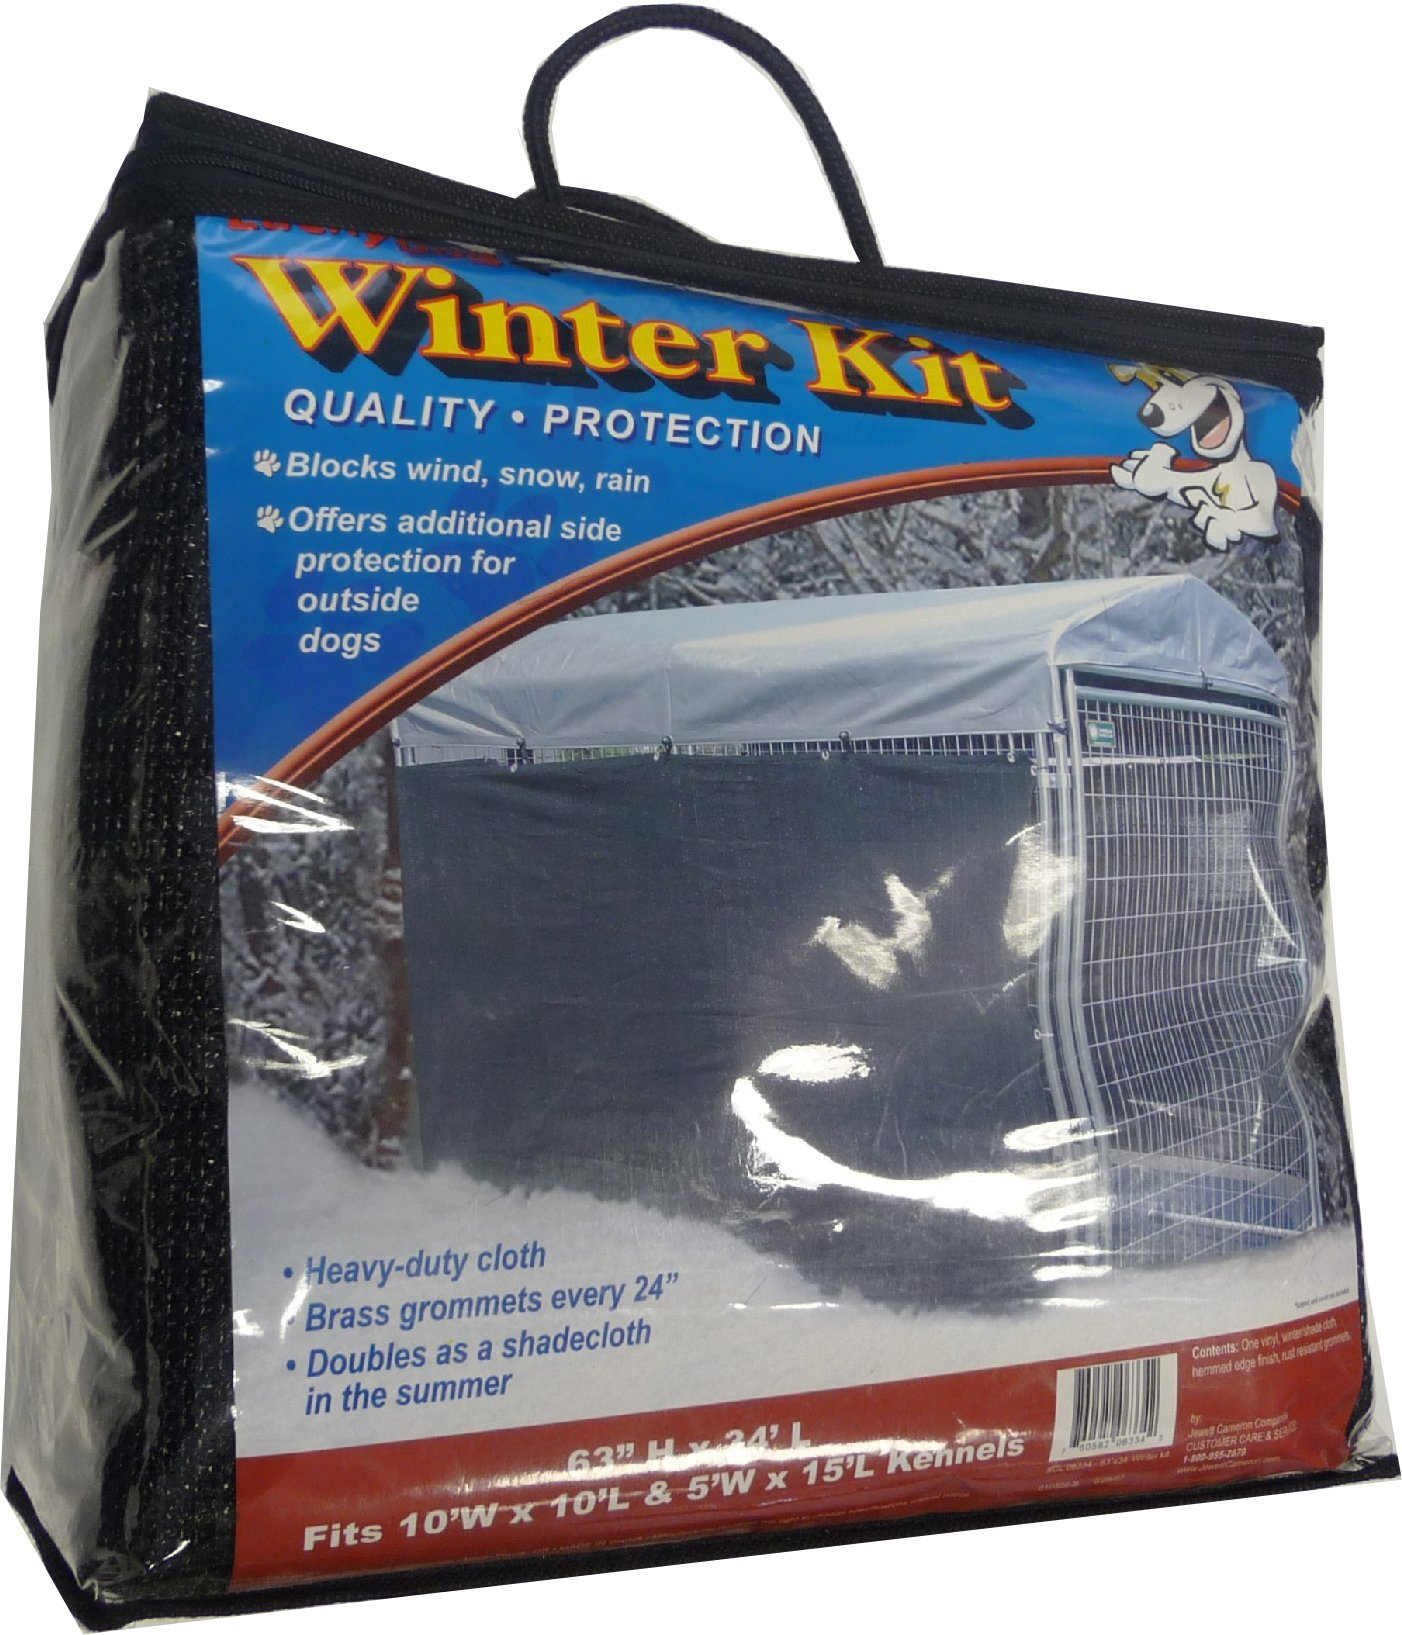 Lucky Dog Weatherguard Extra Large Shade Cloth/Winterization Kit with Grommets (57in. H x 34ft. L), Fits 10ft. X 10ft. Or 5ft. X 15ft. Outdoor Cages and Pens